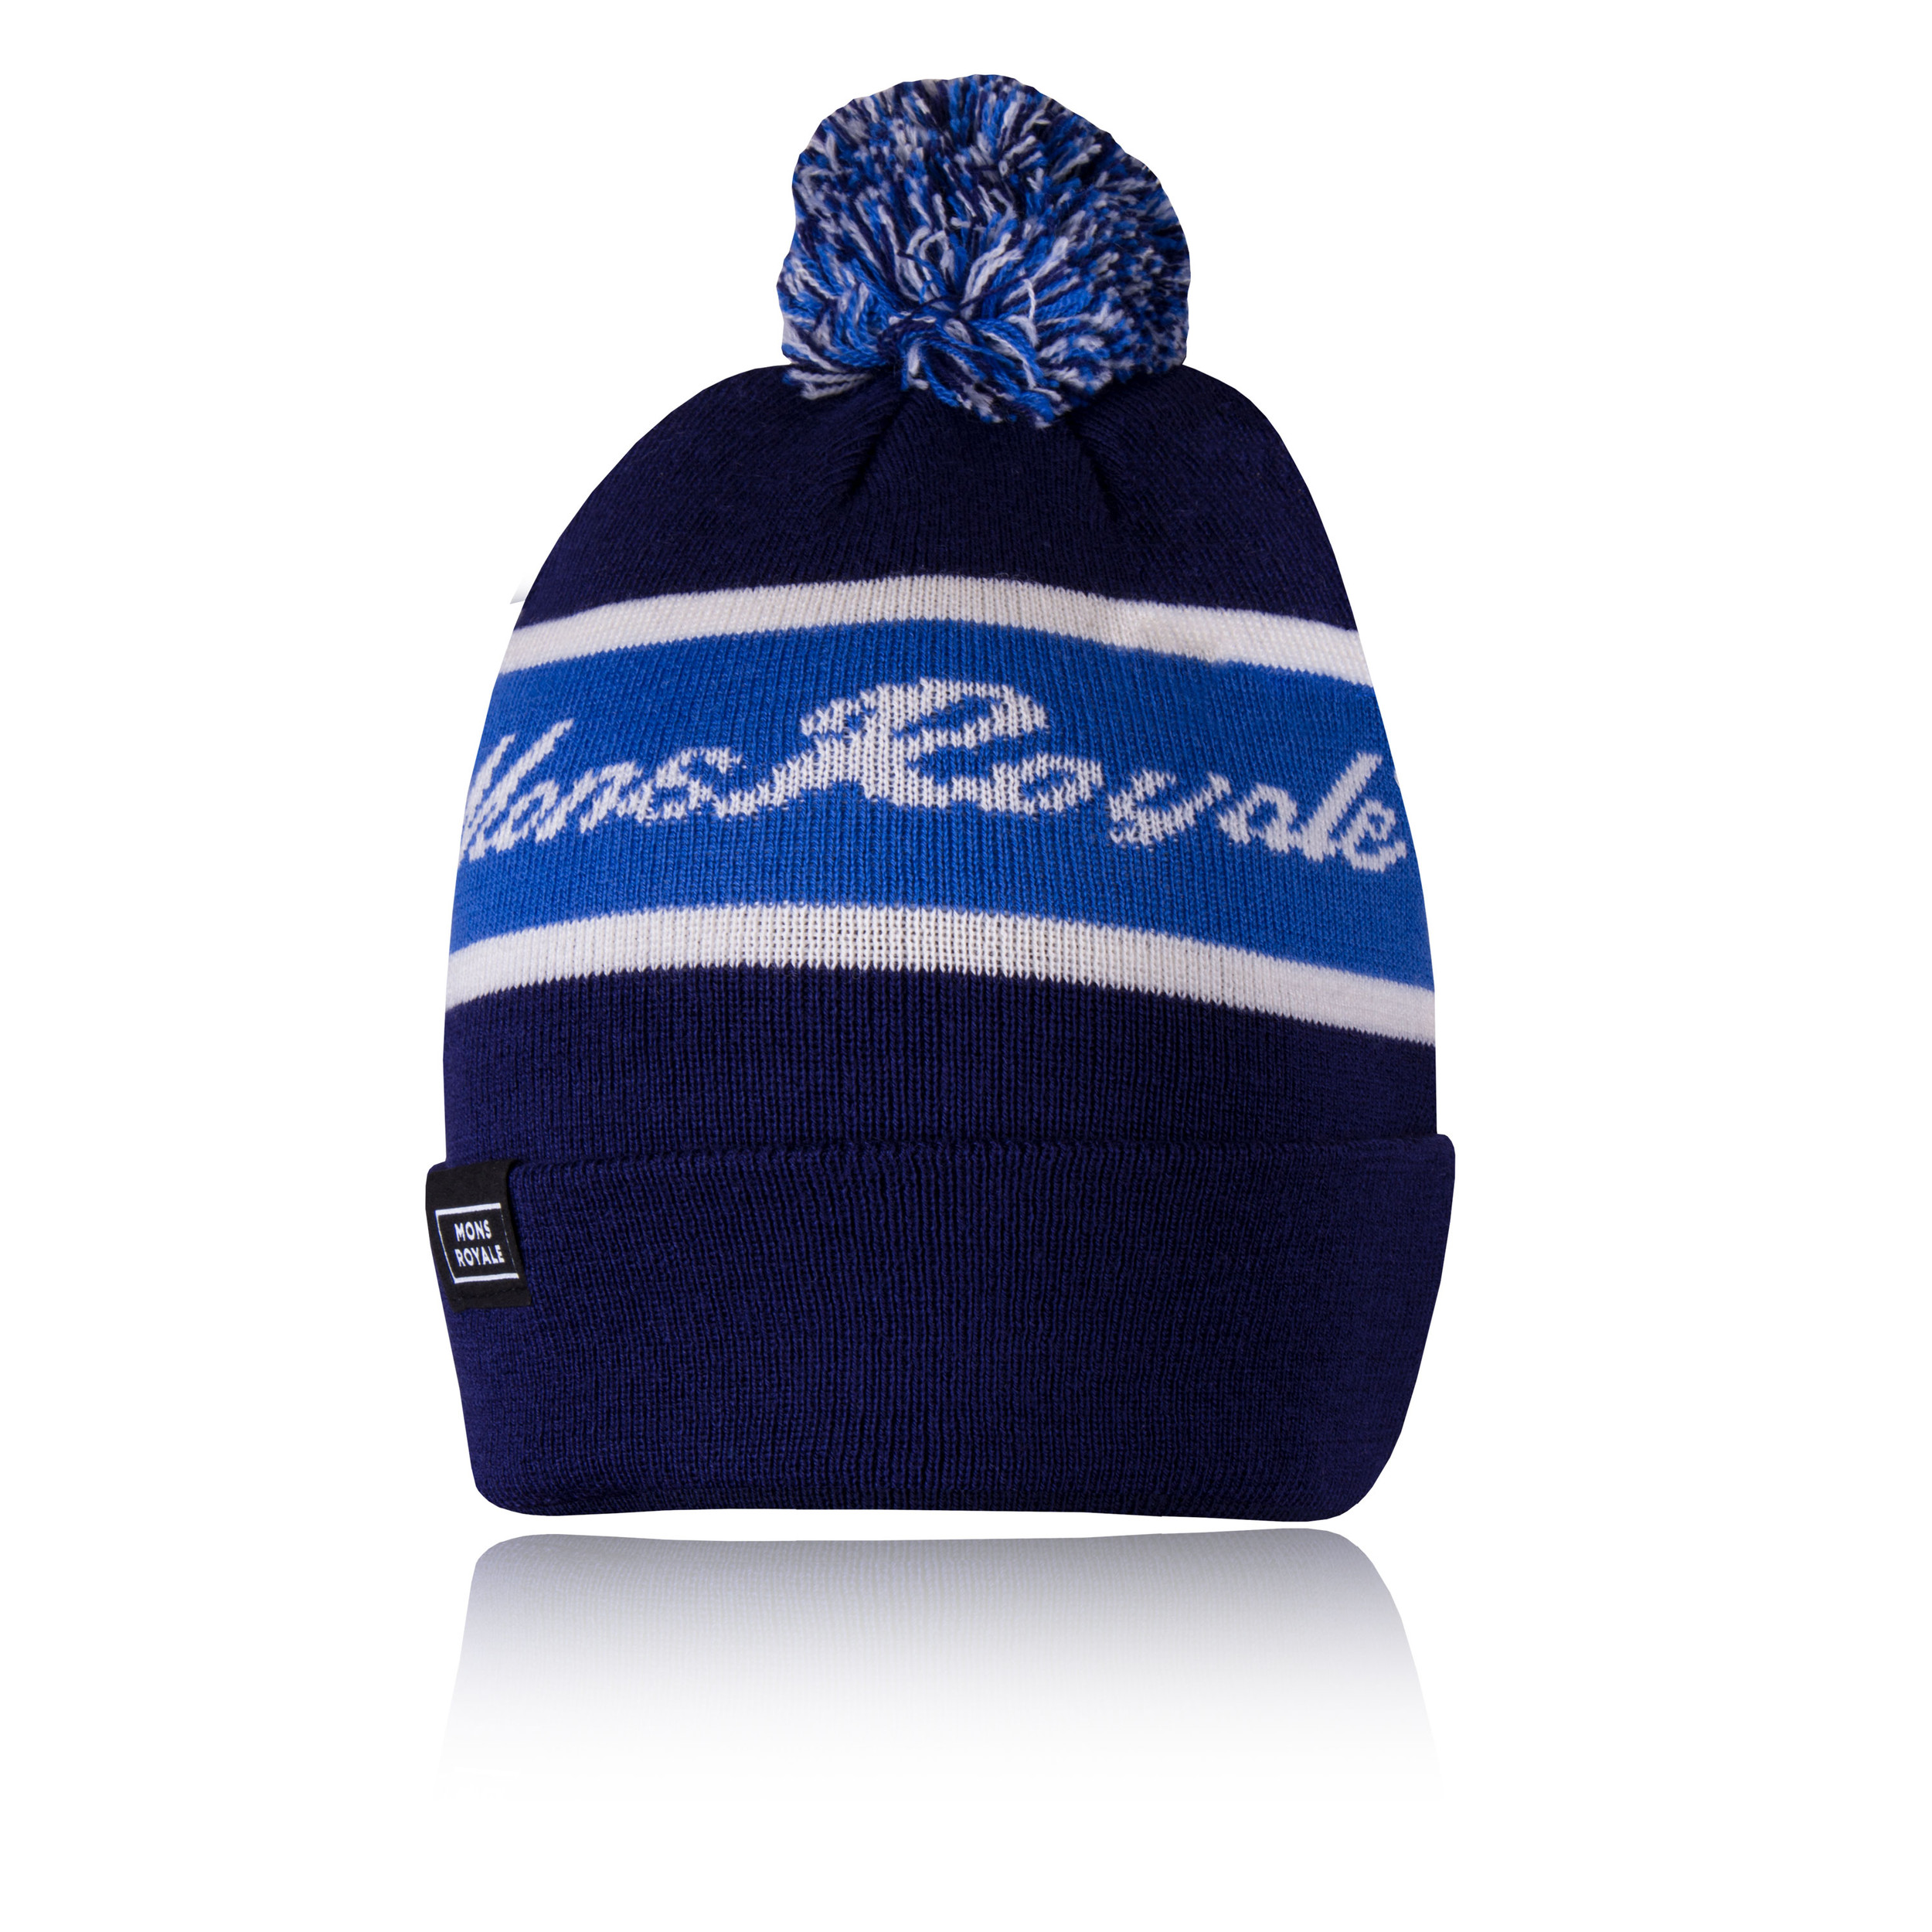 Details about Mons Royale Mens Club Pom-Pom Beanie Blue Navy Sports  Outdoors Headwear 70fc790d2fe